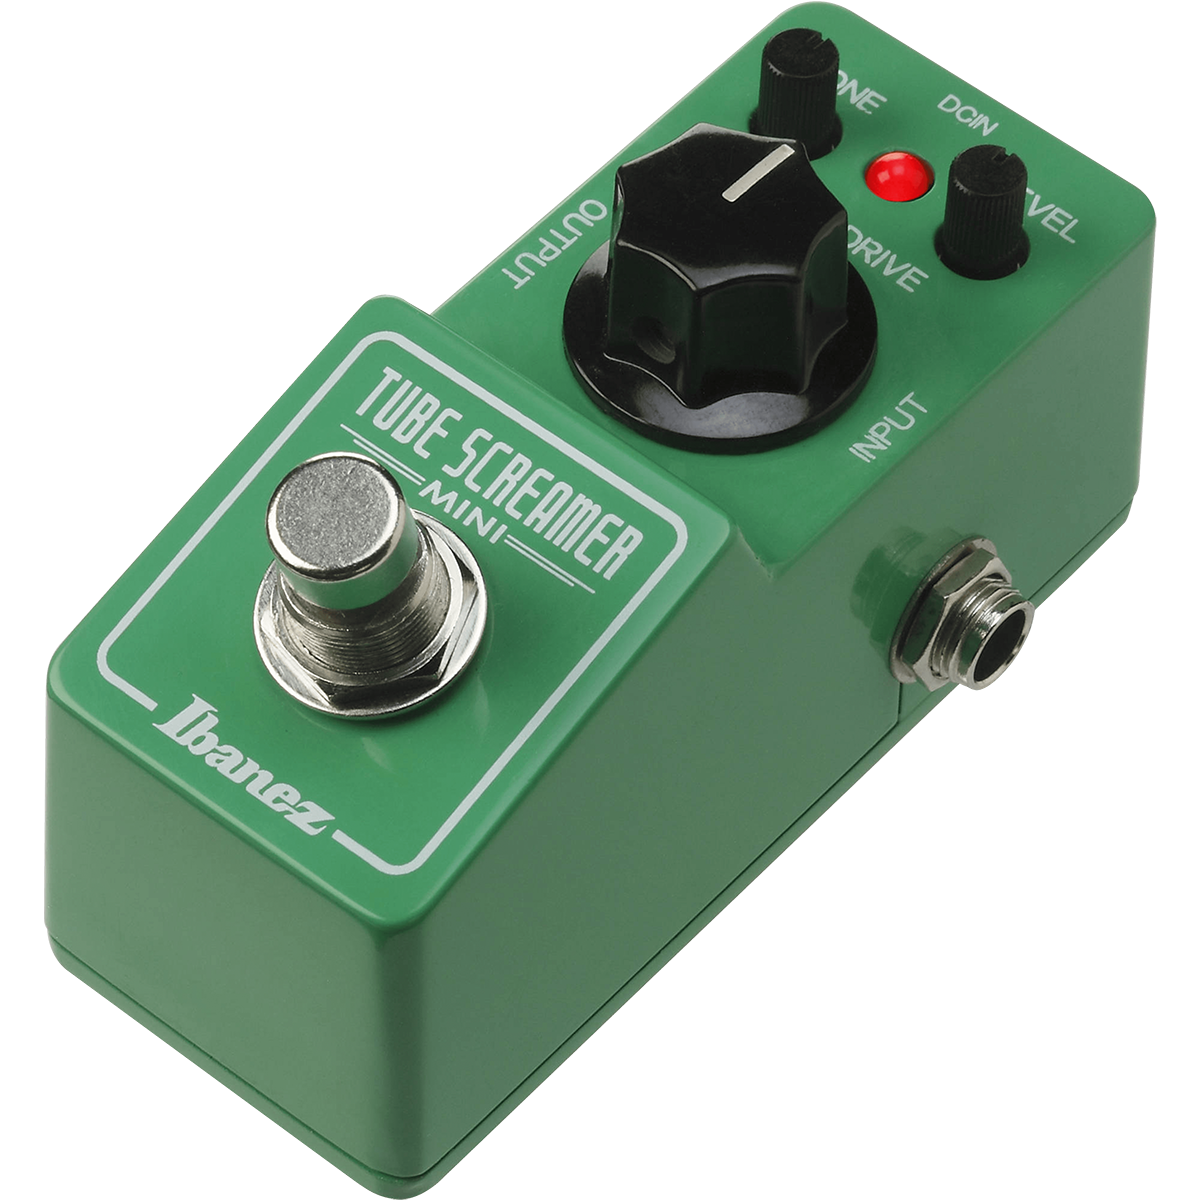 Top 10 Overdrive Pedals : the reverb top 10 overdrive pedals all things guitar ~ Hamham.info Haus und Dekorationen